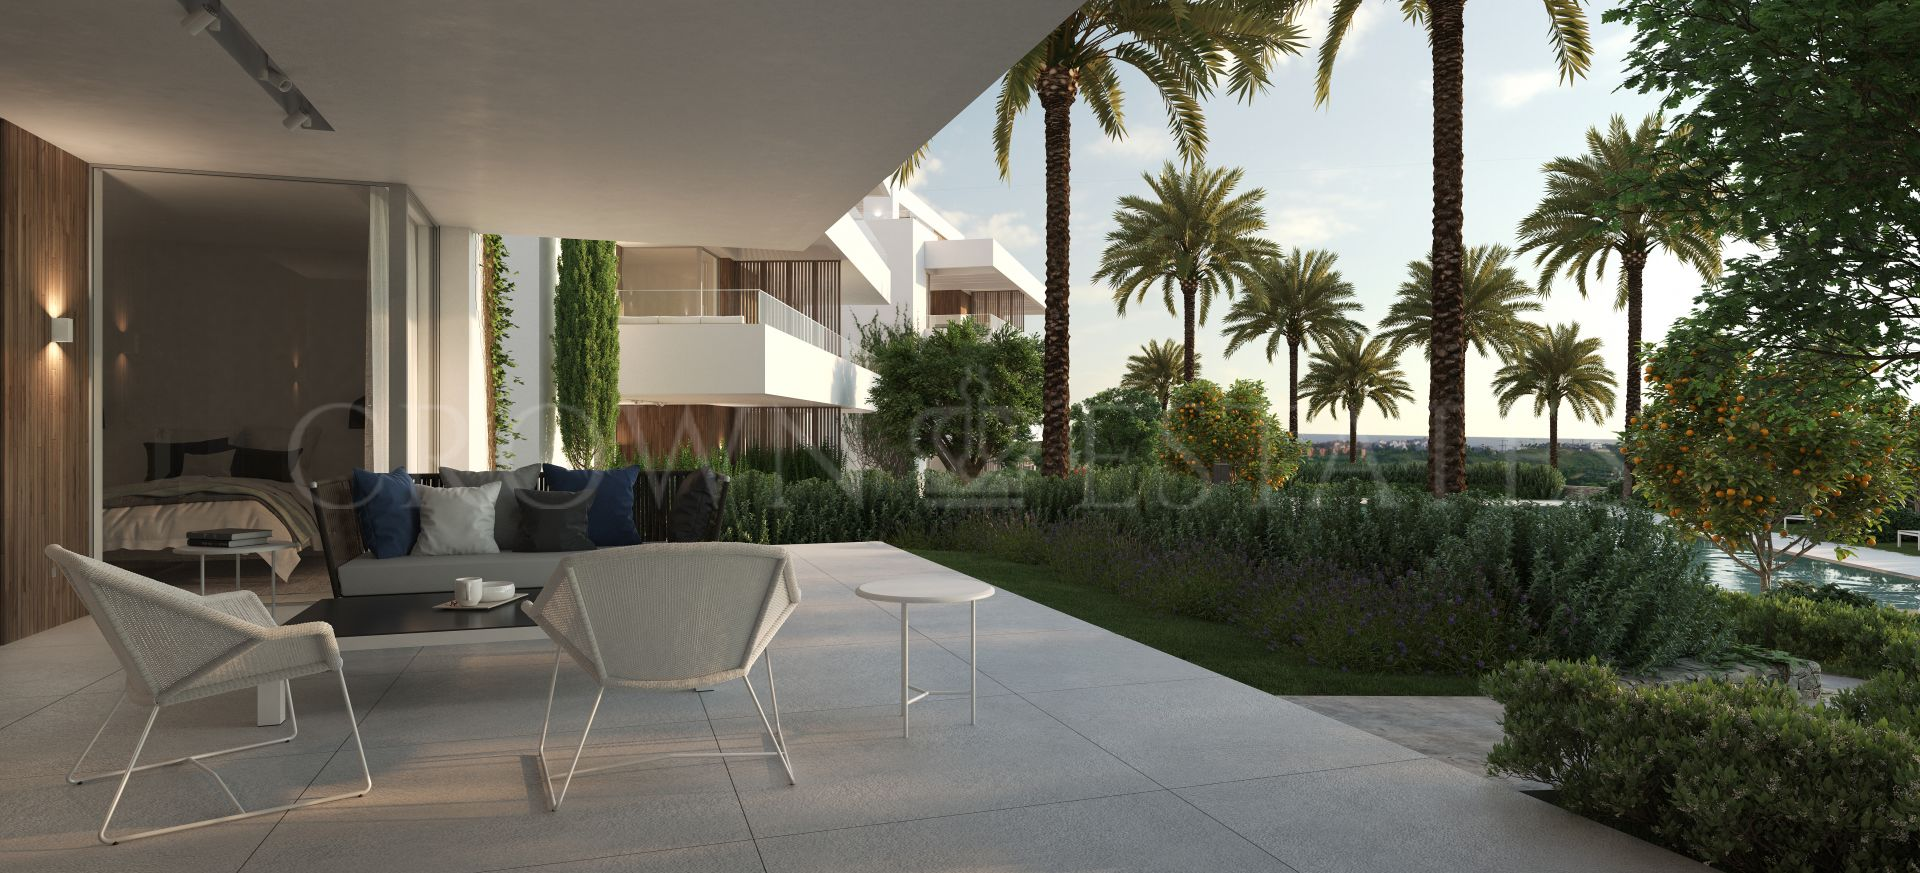 Unico Benahavis, luxury modern apartments in the coveted area of Los Arqueros